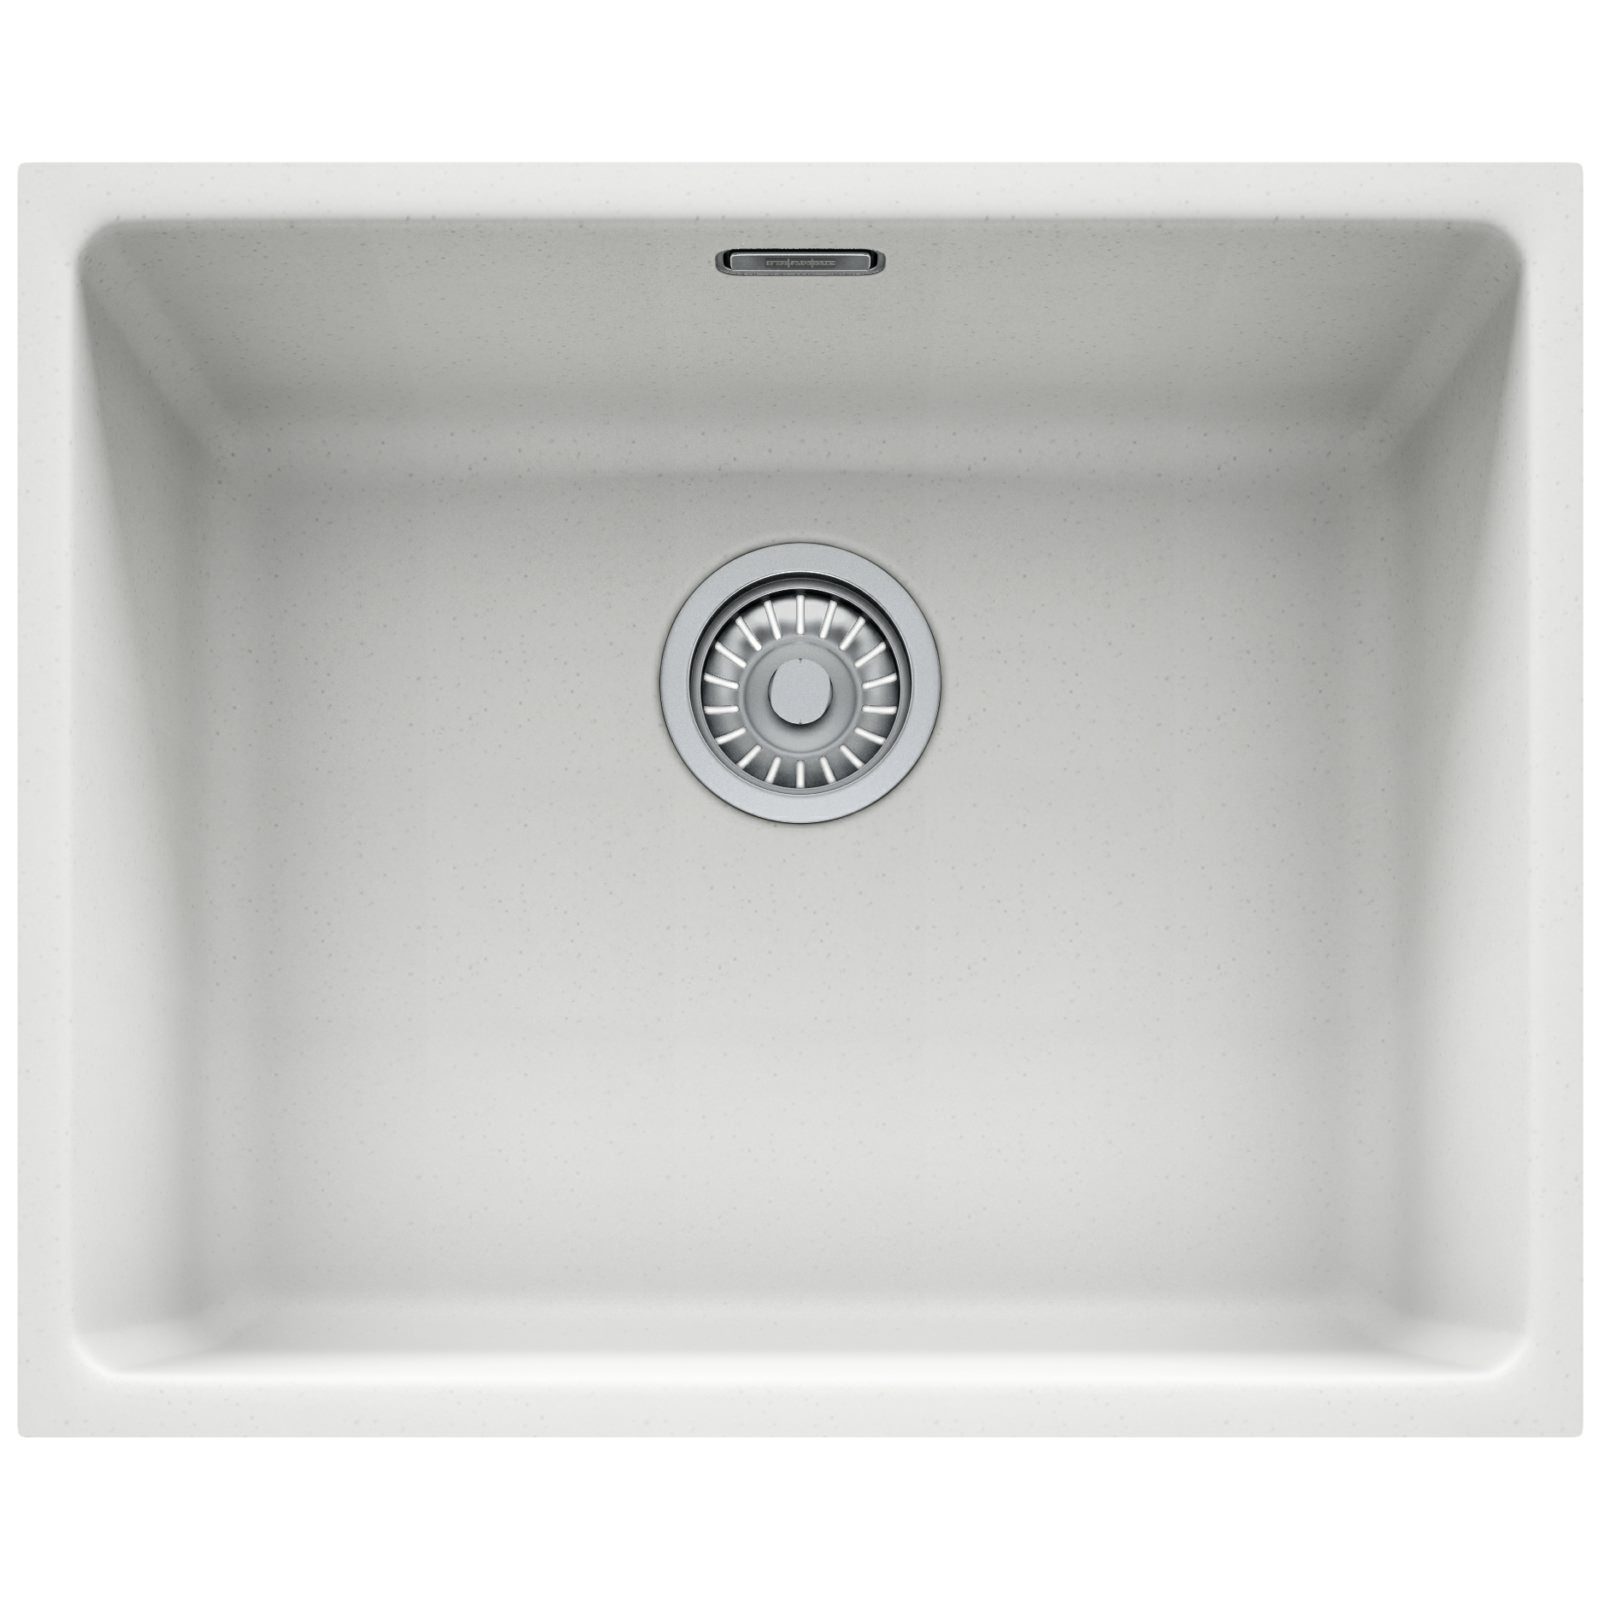 Franke Fragranite Undermount Sink : ... Fragranite Polar White 1.0 Bowl Kitchen Undermount Sink 125.0046.874